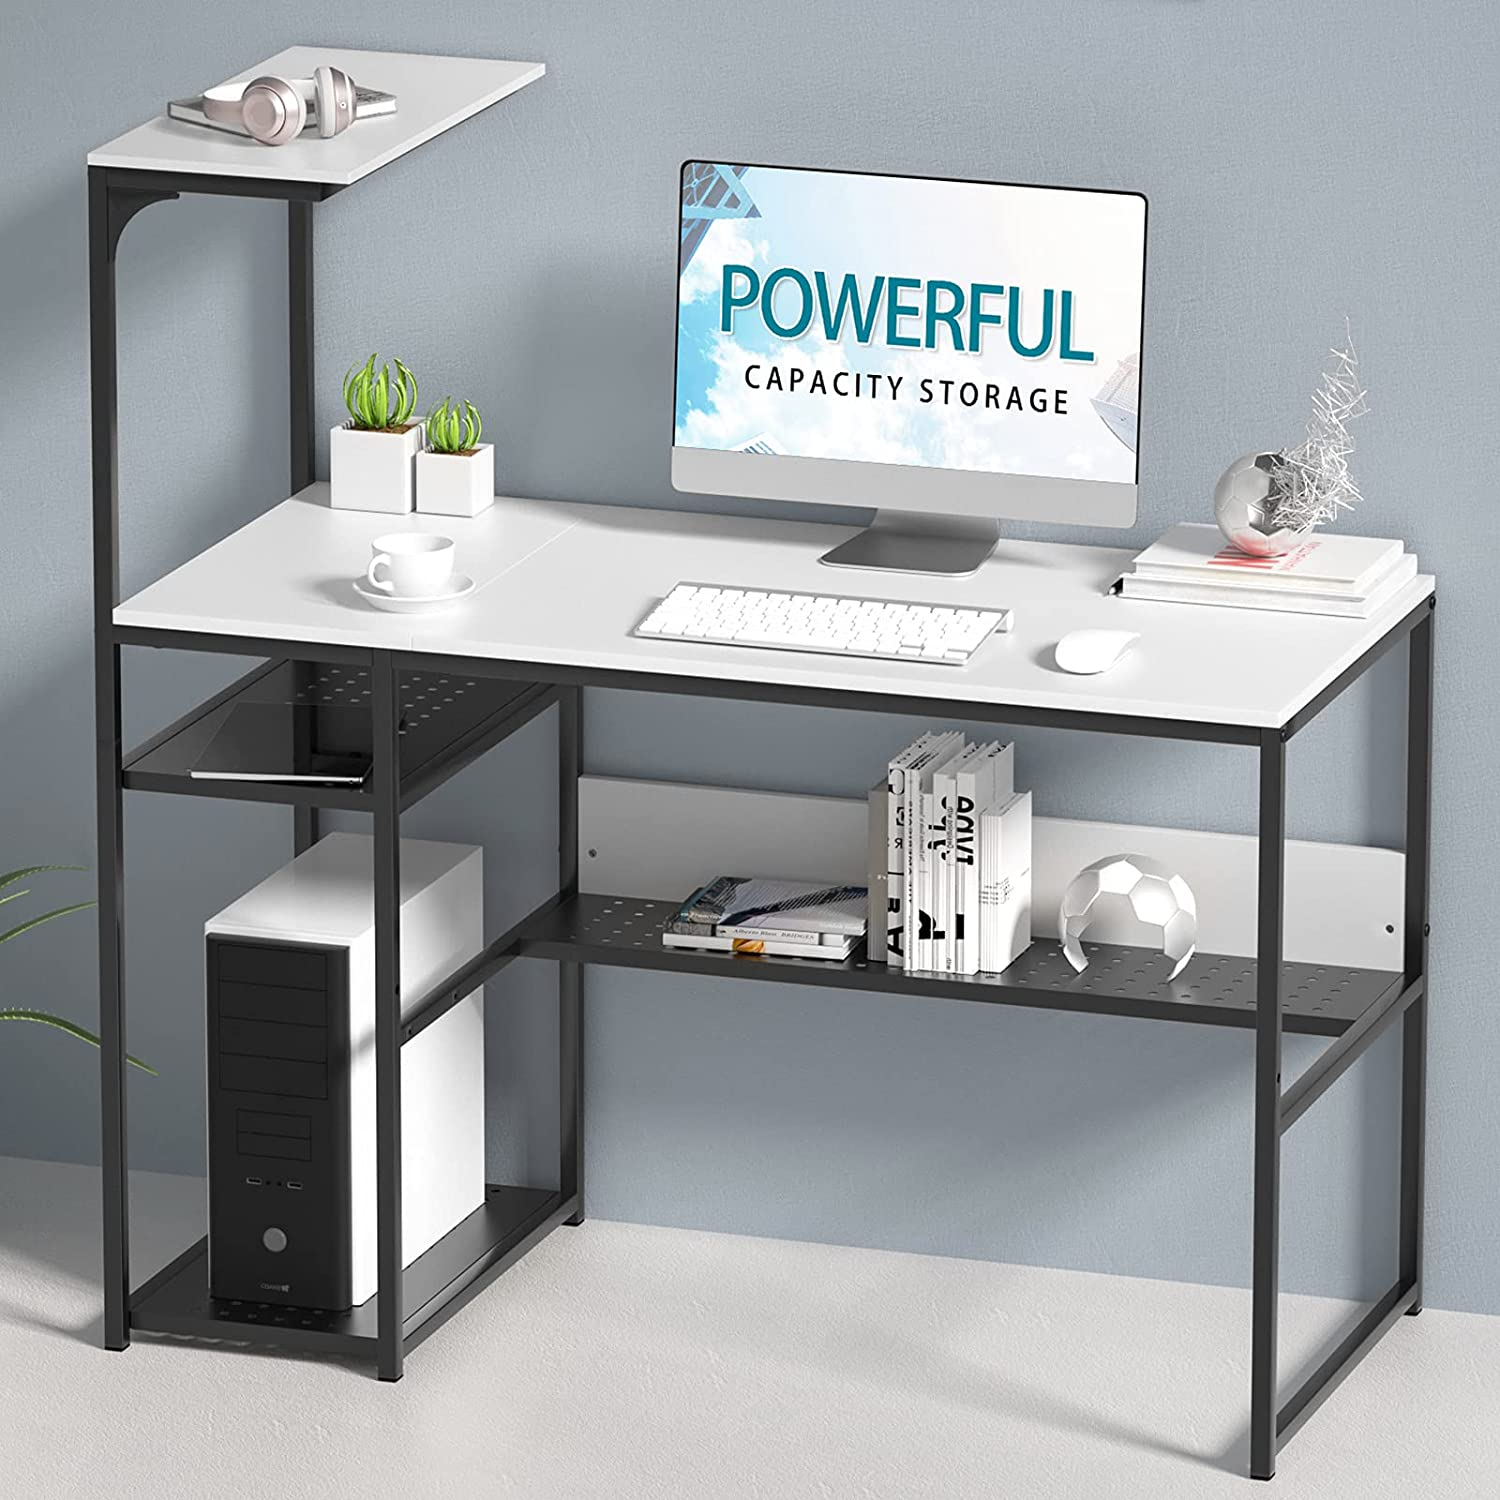 SINPAID White Computer Desk with 4-Tier Reversible Storage Shelves, 40 inch Large Home Office Laptop Study Writing Table Workstation, Modern Simple Desk with Bookshelf